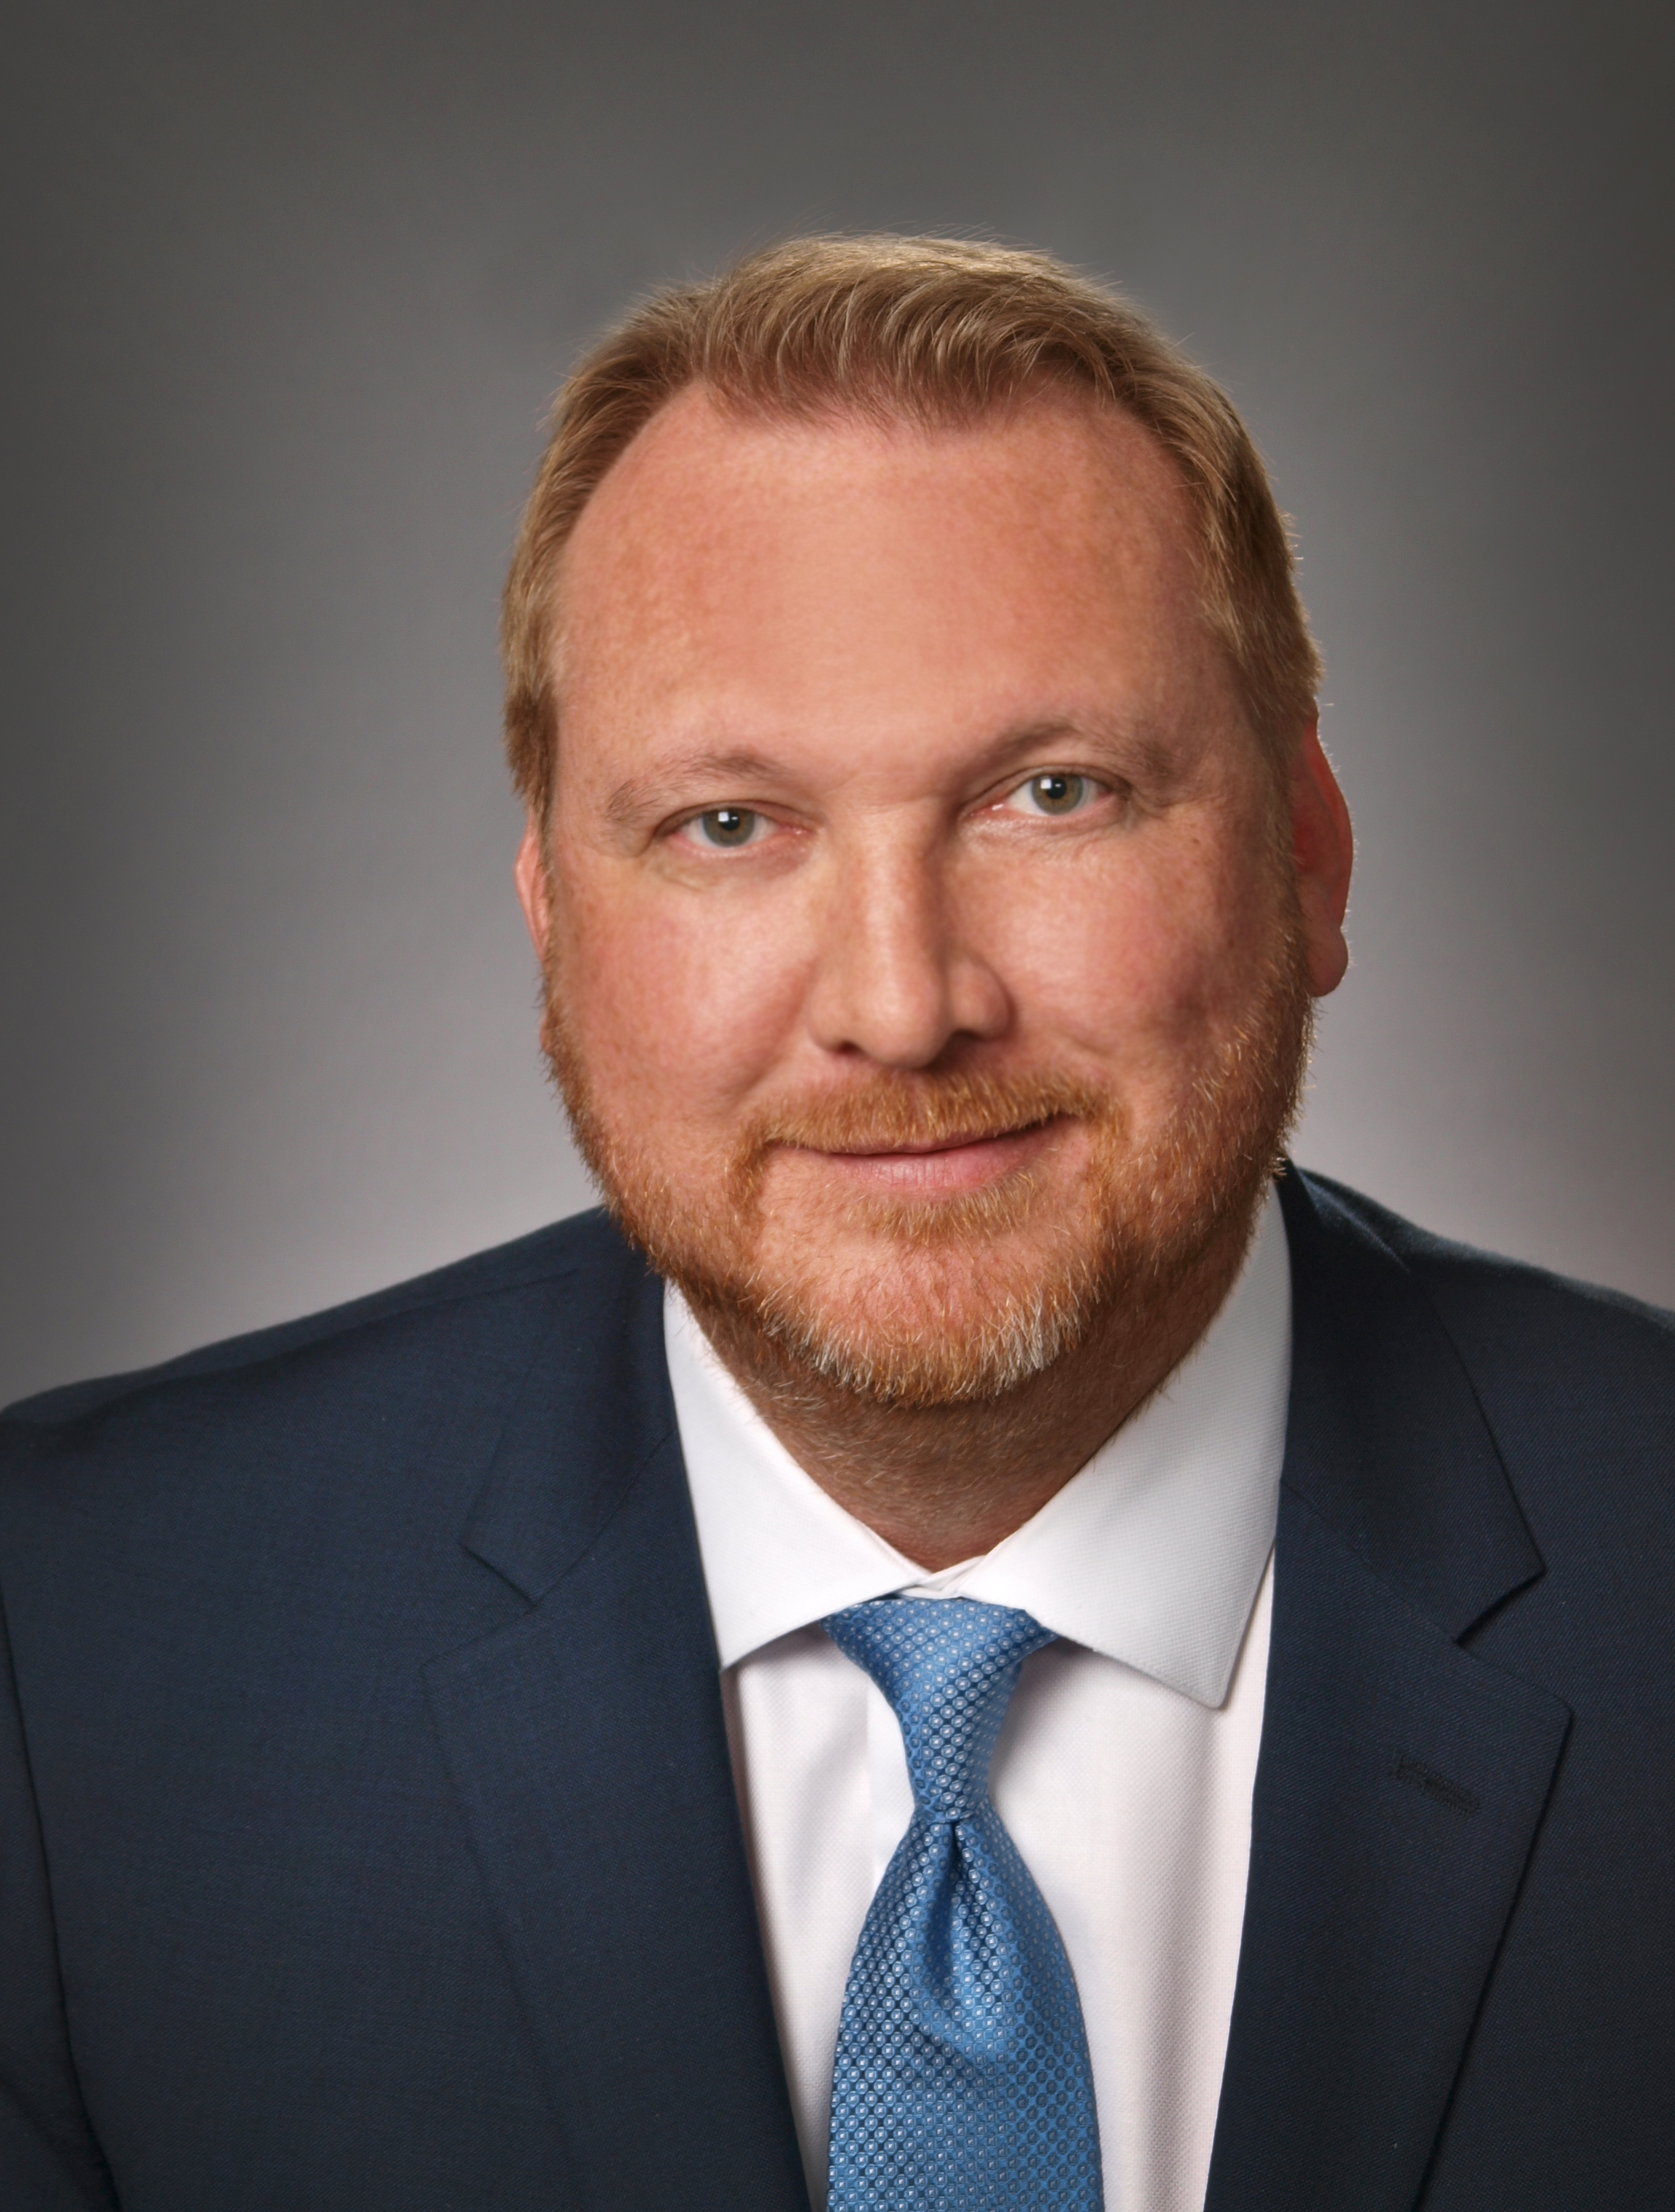 Travis Hyde – Chief Operating Officer (COO)   Mr. Hyde joined DGS in January 2016 after a 19-year career as a security professional and program manager for companies such as ManTech, Lockheed Martin and Northrop Grumman.  His most recent achievement with a large company was the capture of the largest Air Force Security Services contract ever awarded of this type with a total value of over $400M. He acquired his leadership skills in the United States Marine Corps (USMC) as an Infantry Squad Leader and served as a member of the USMC Silent Drill Platoon.  Mr. Hyde has over 23 years of experience in clandestine program protection for strategic, tactical, and national assets as well as acquisition and operations experience in SCI and SAP programs for customers in the DoD and IC.